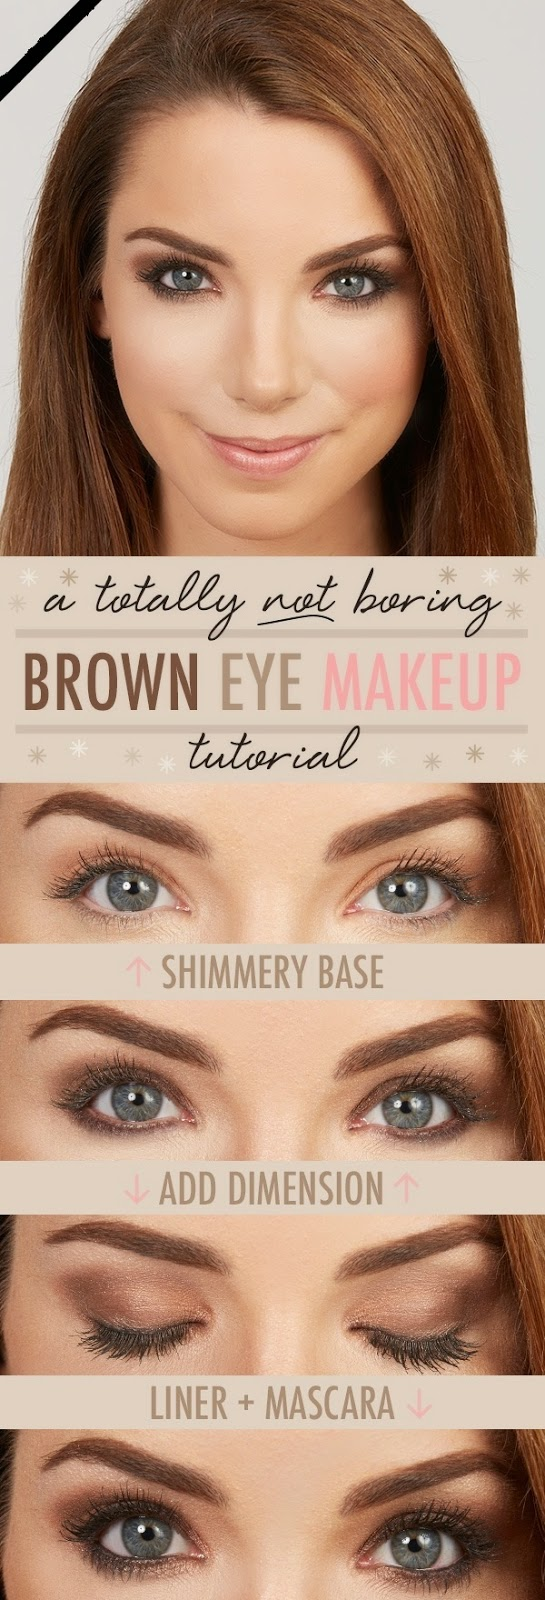 A Totally NOT Boring Brown Eye Makeup Tutorial